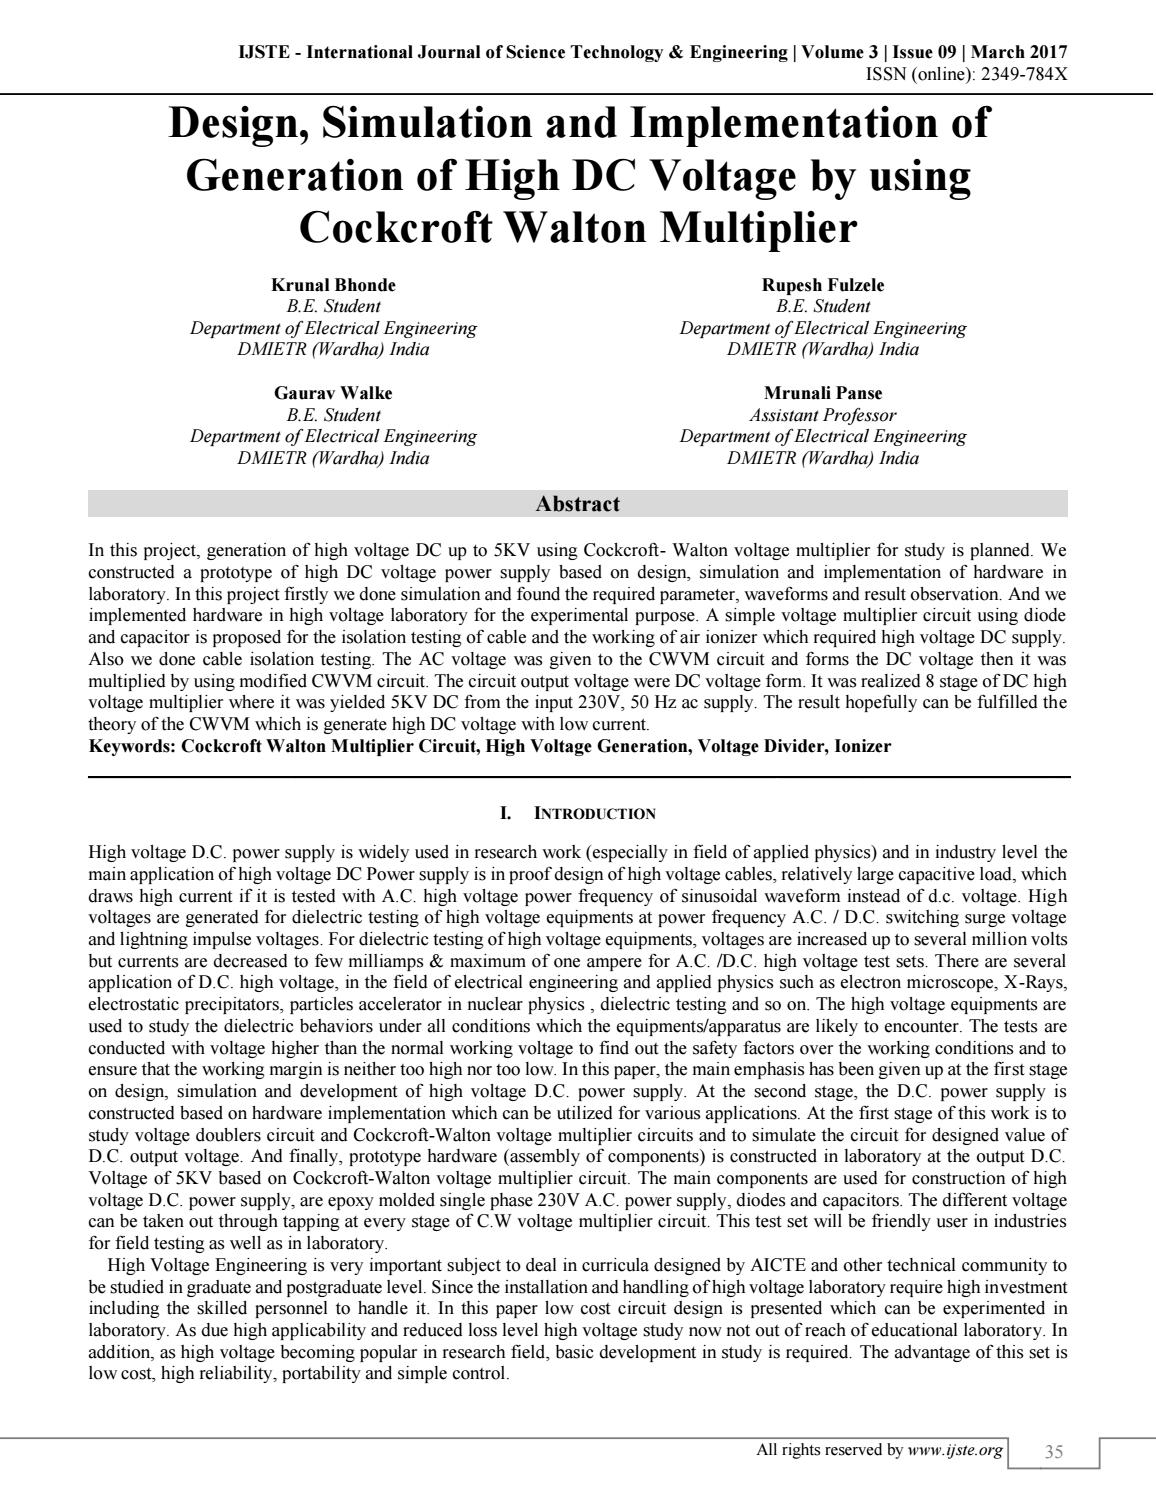 hight resolution of design simulation and implementation of generation of high dc voltage by using cockcroft walton vol by international journal of science technology and